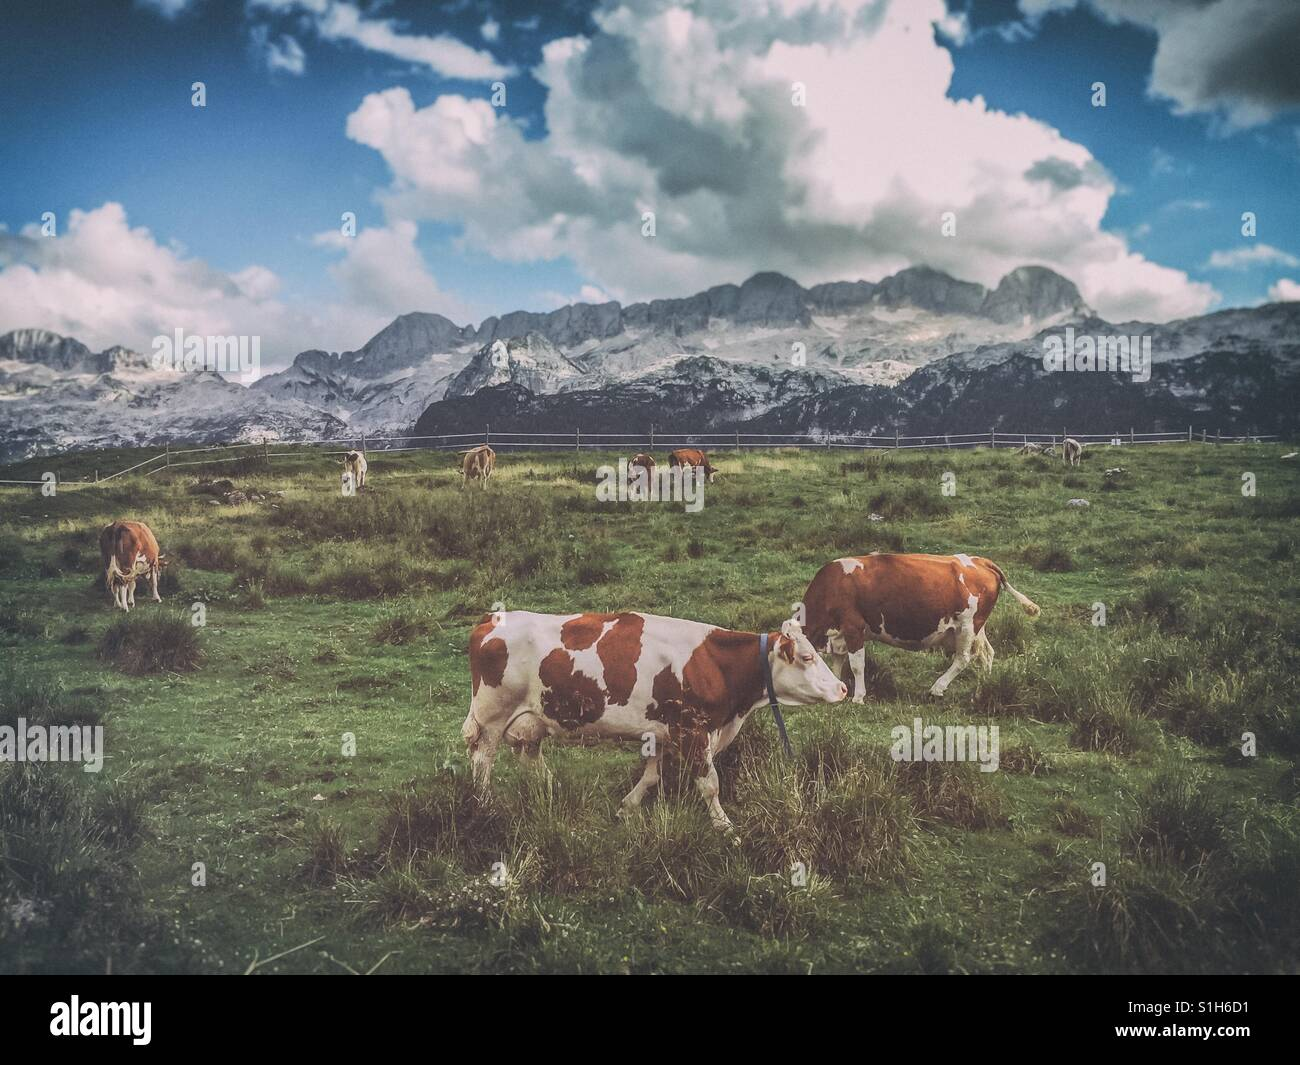 Cows on a meadow with mountains in the background (Montasio plateau, Julian Alps, Italy) - Stock Image